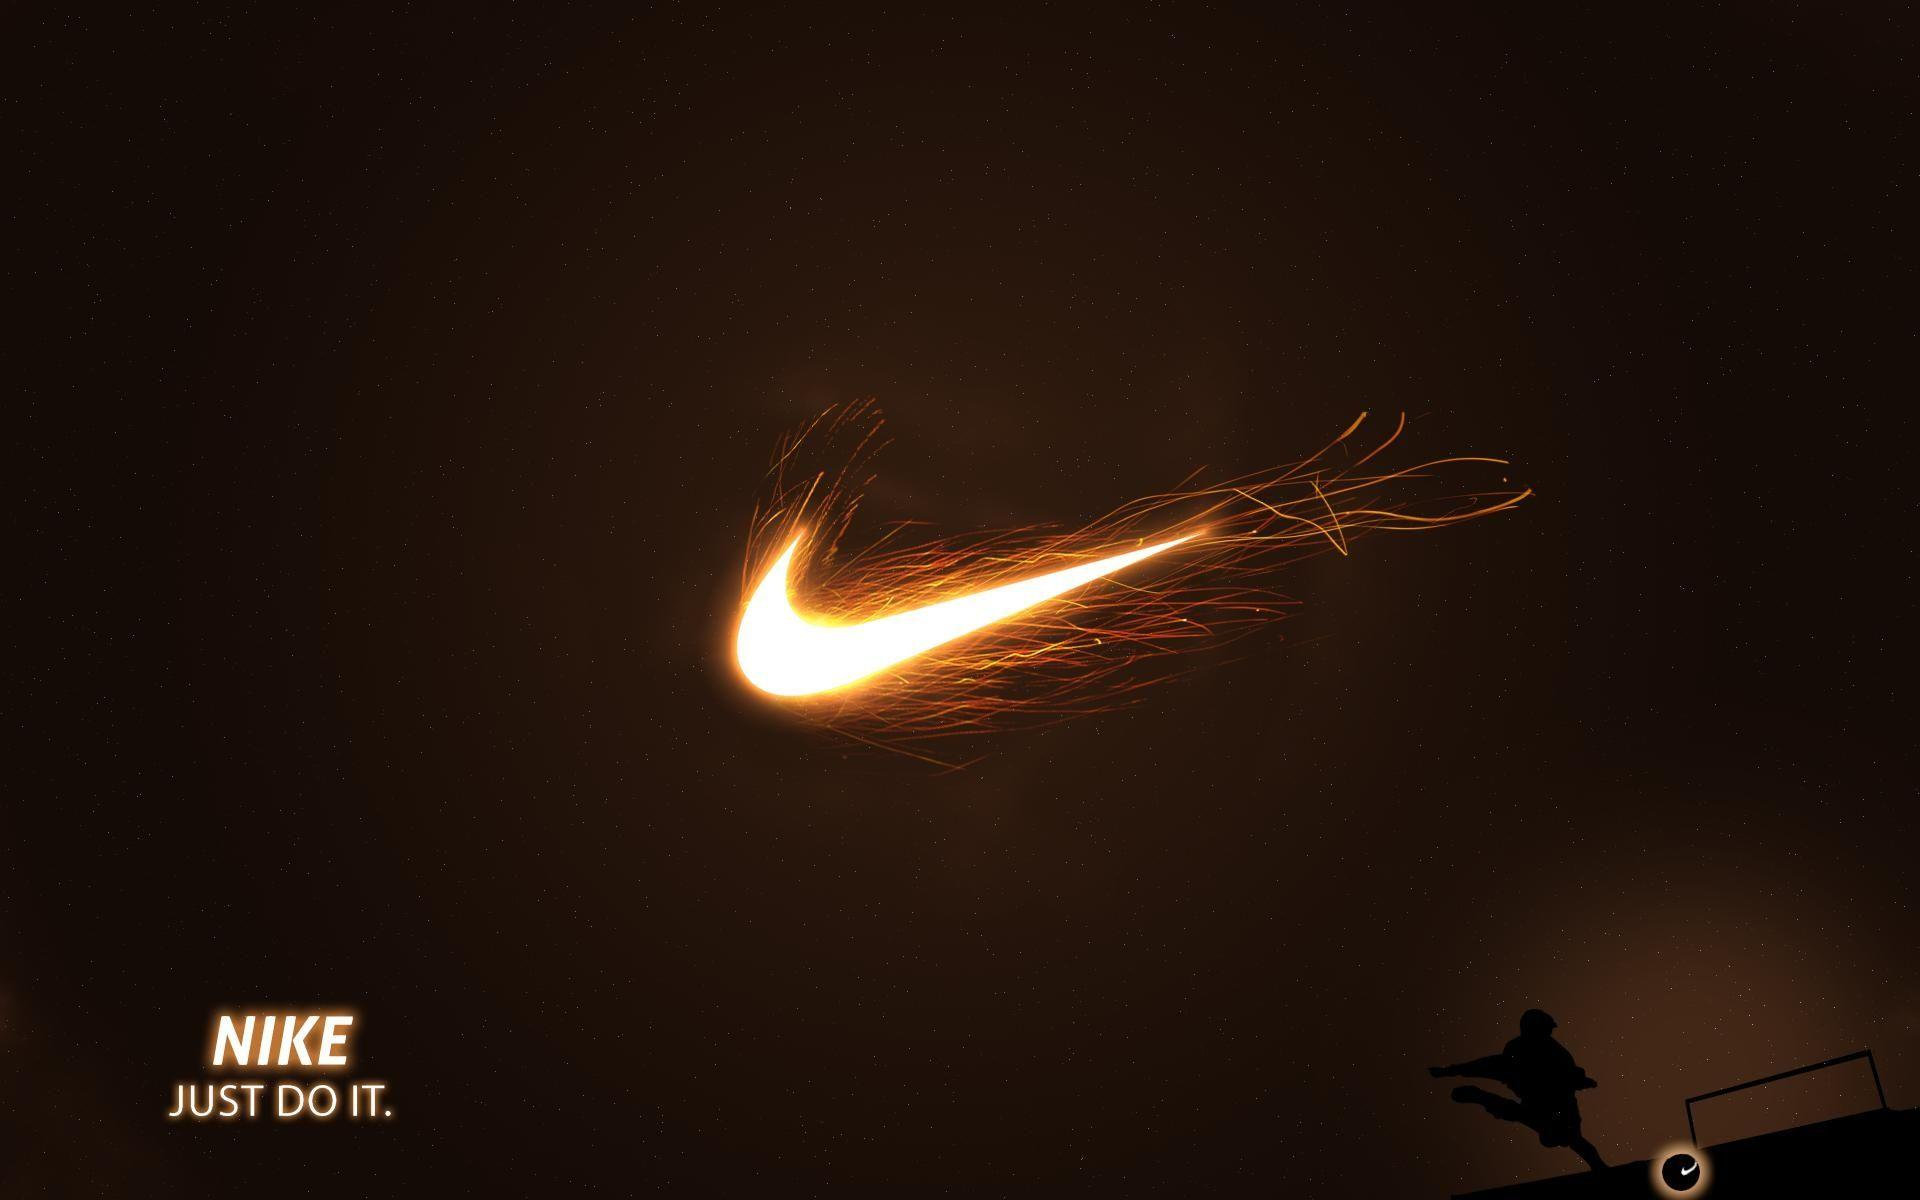 nike wallpapers cool white - photo #29